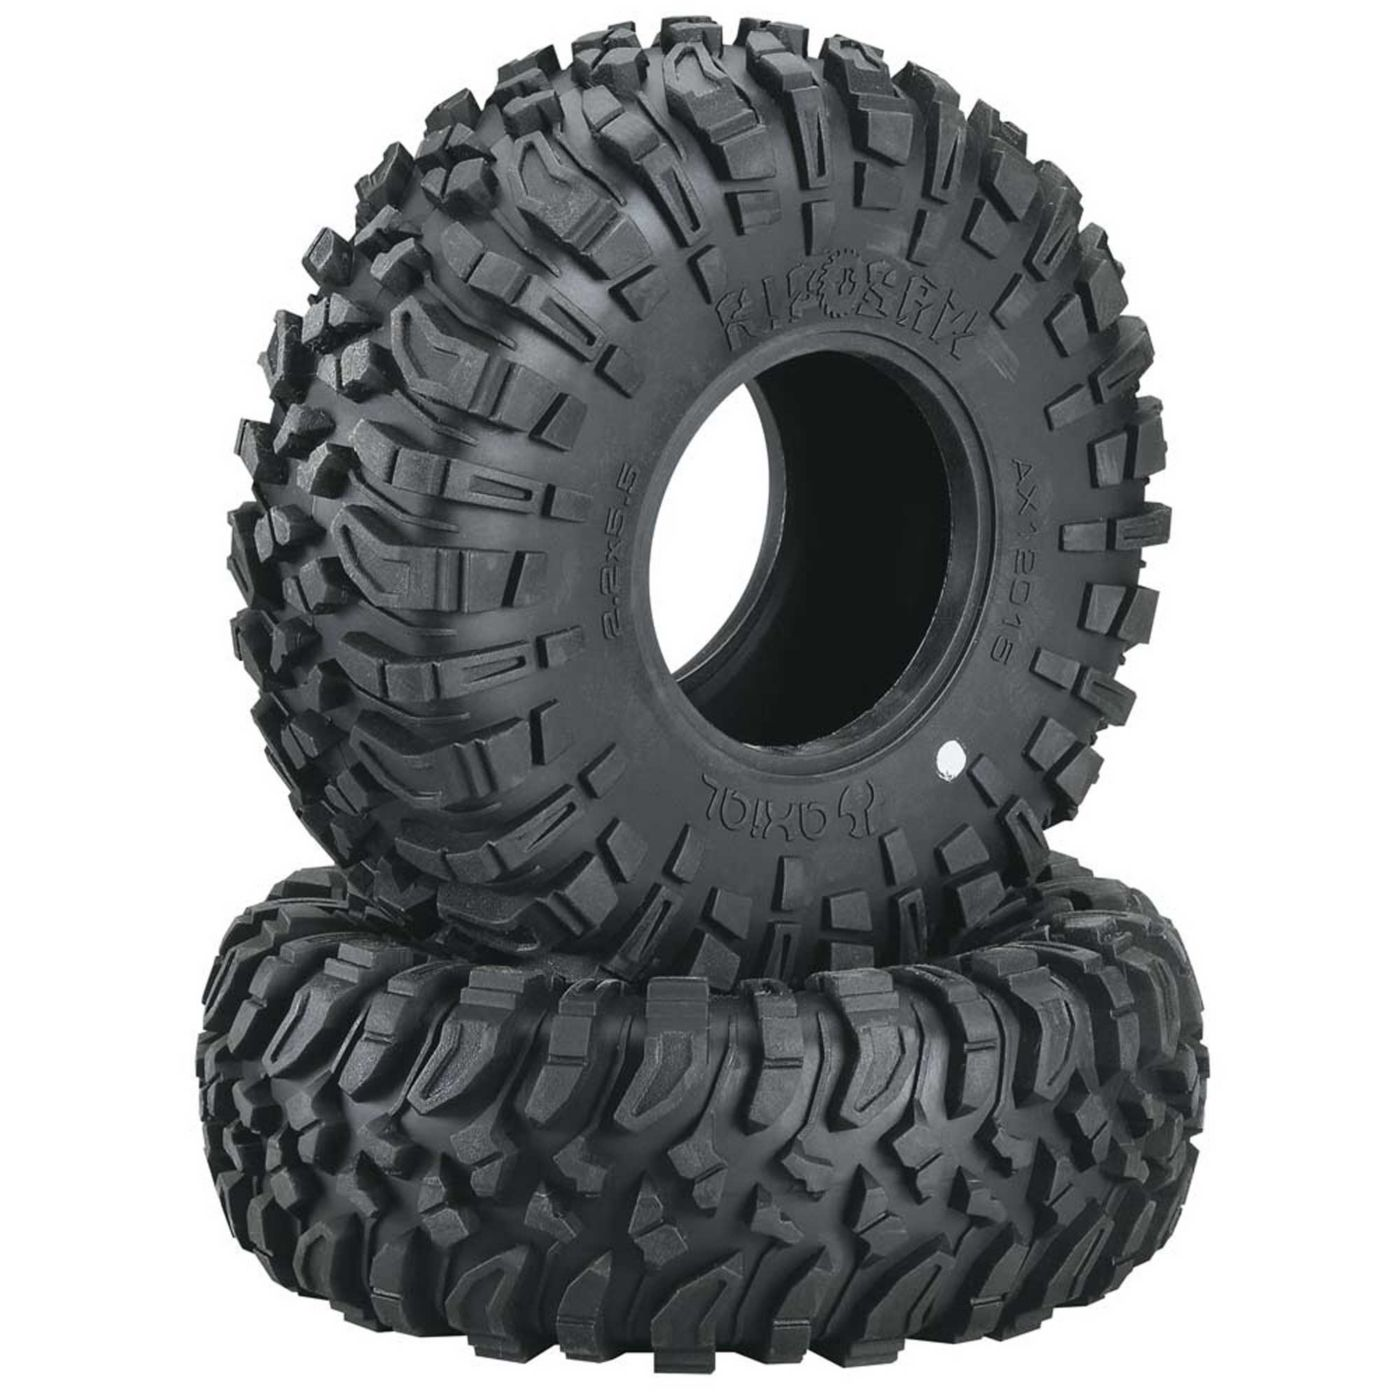 Axial AXIC2015 - 1/10 Ripsaw X Compound 2.2 Tire with Inserts